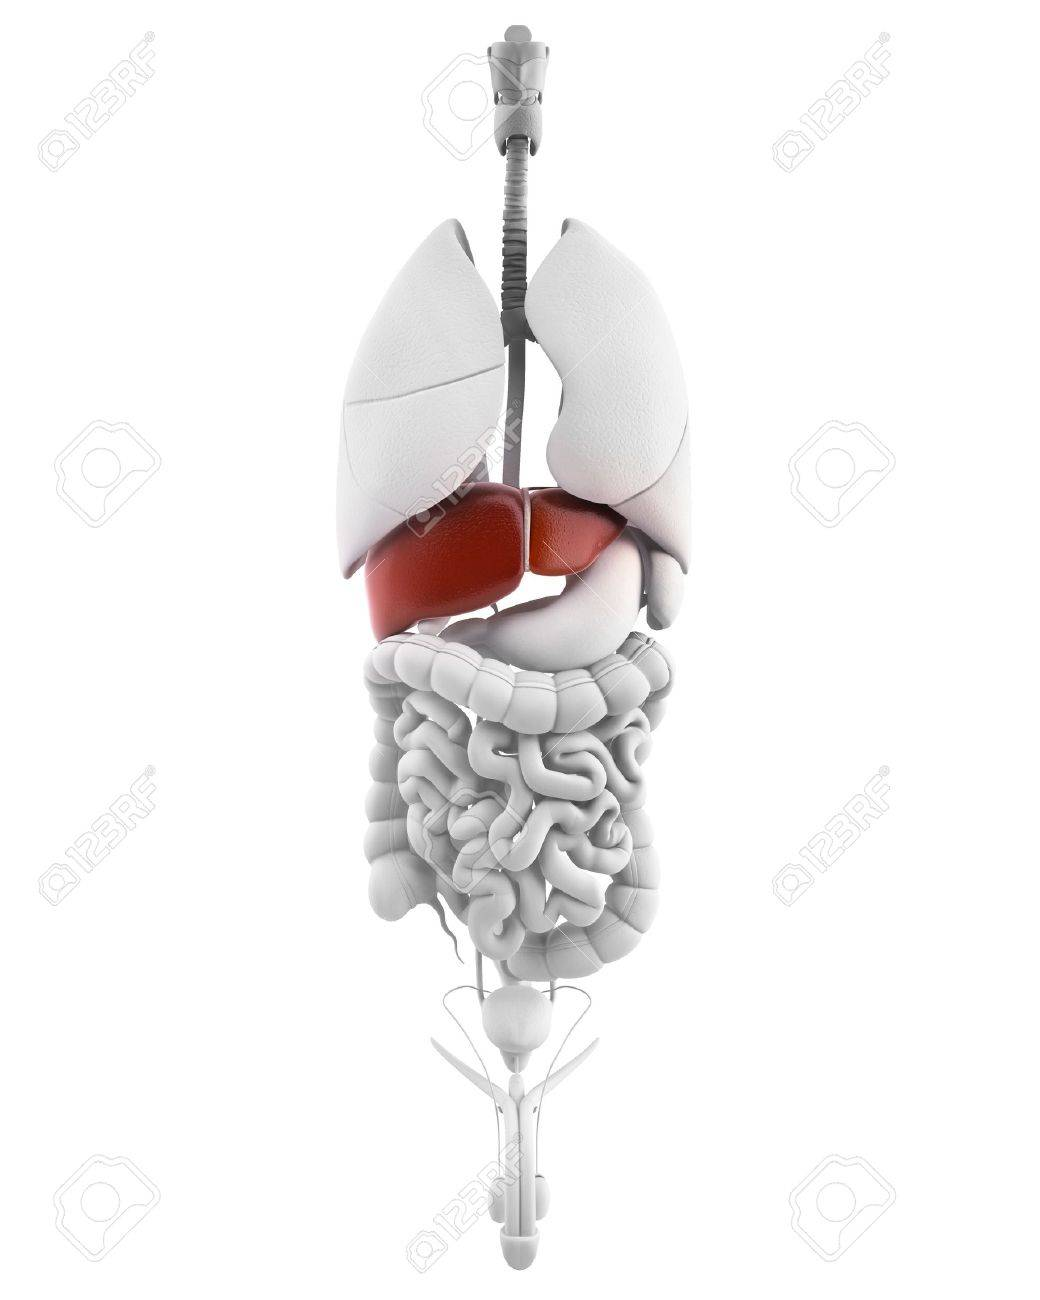 Male liver organ - interior view with full body Male liver organ - interior view Stock Photo - 14671630